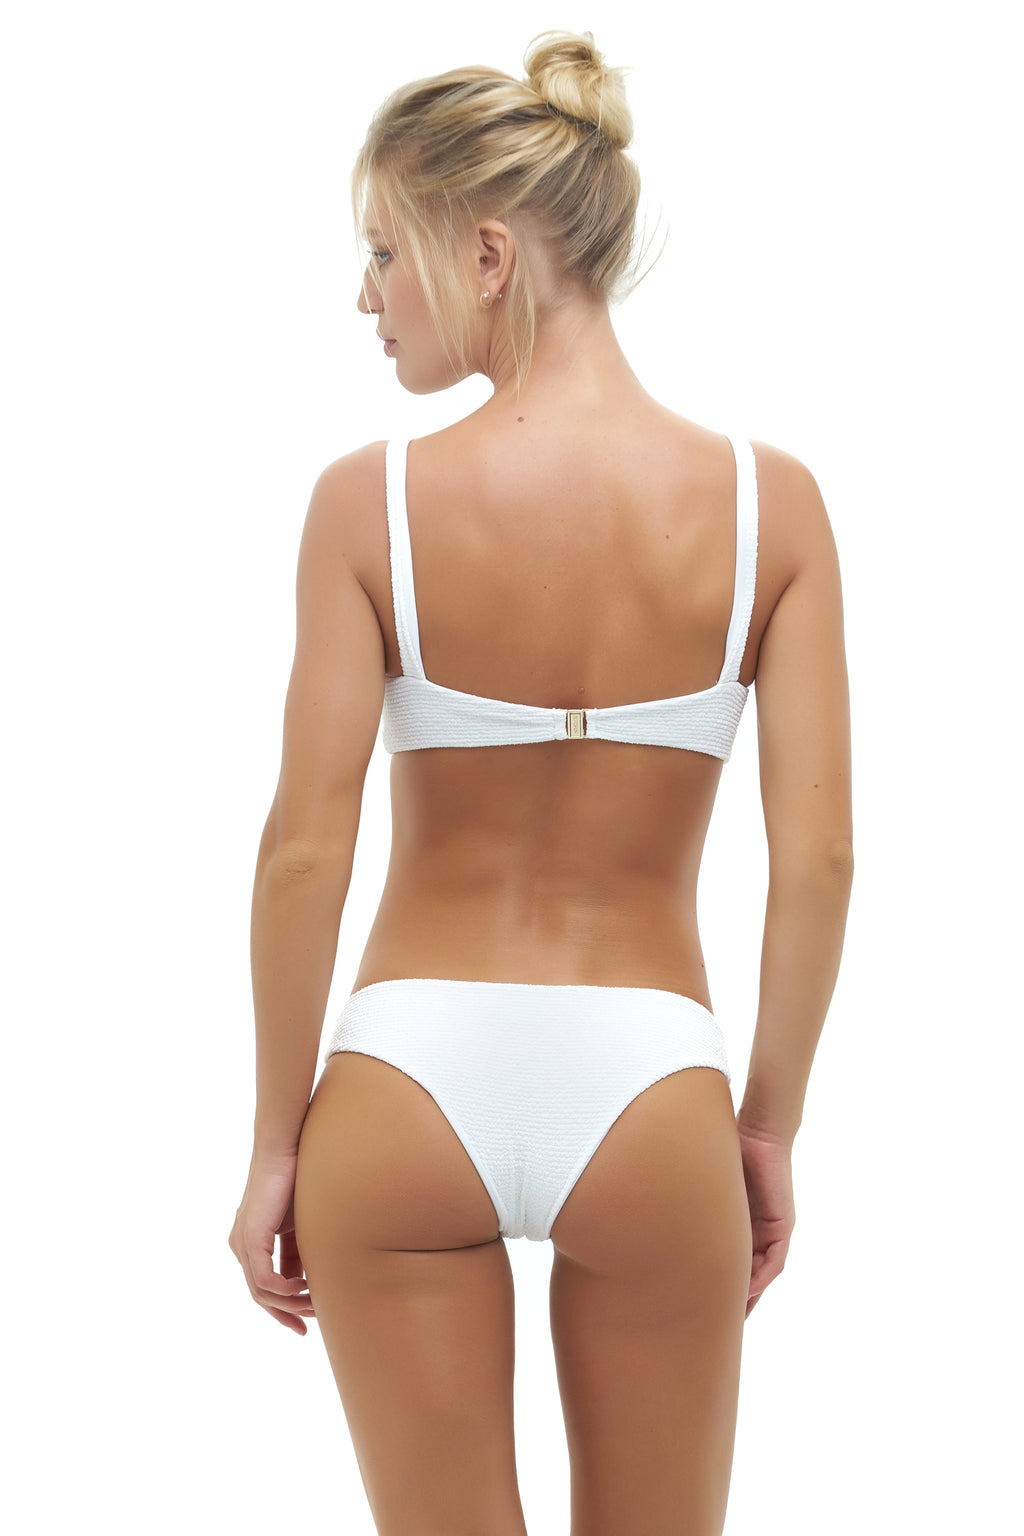 Storm Swimwear - St Barts - Bottom in Storm Le Nuage Blanc